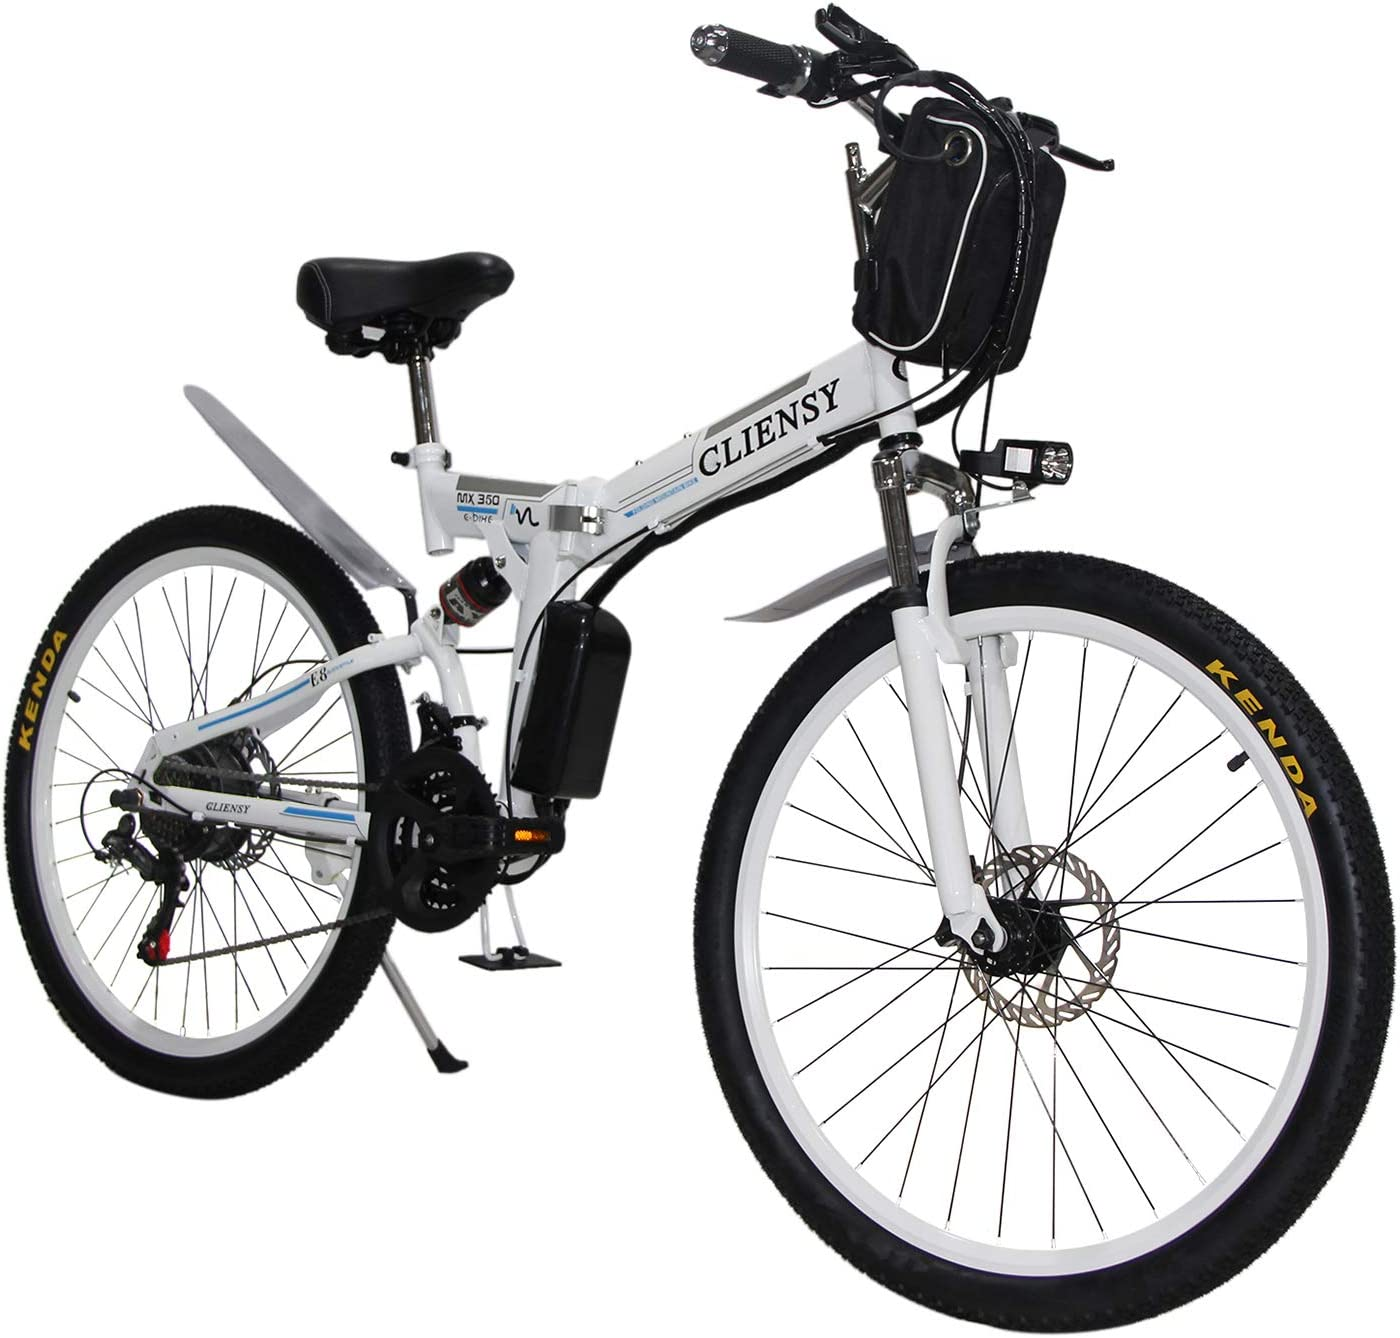 CLIENSY 26 Inch Electric Bike, 350W Folding Ebike with Removable 36V 8AH Lithium Battery for Adults, 21 Speed Shifter White